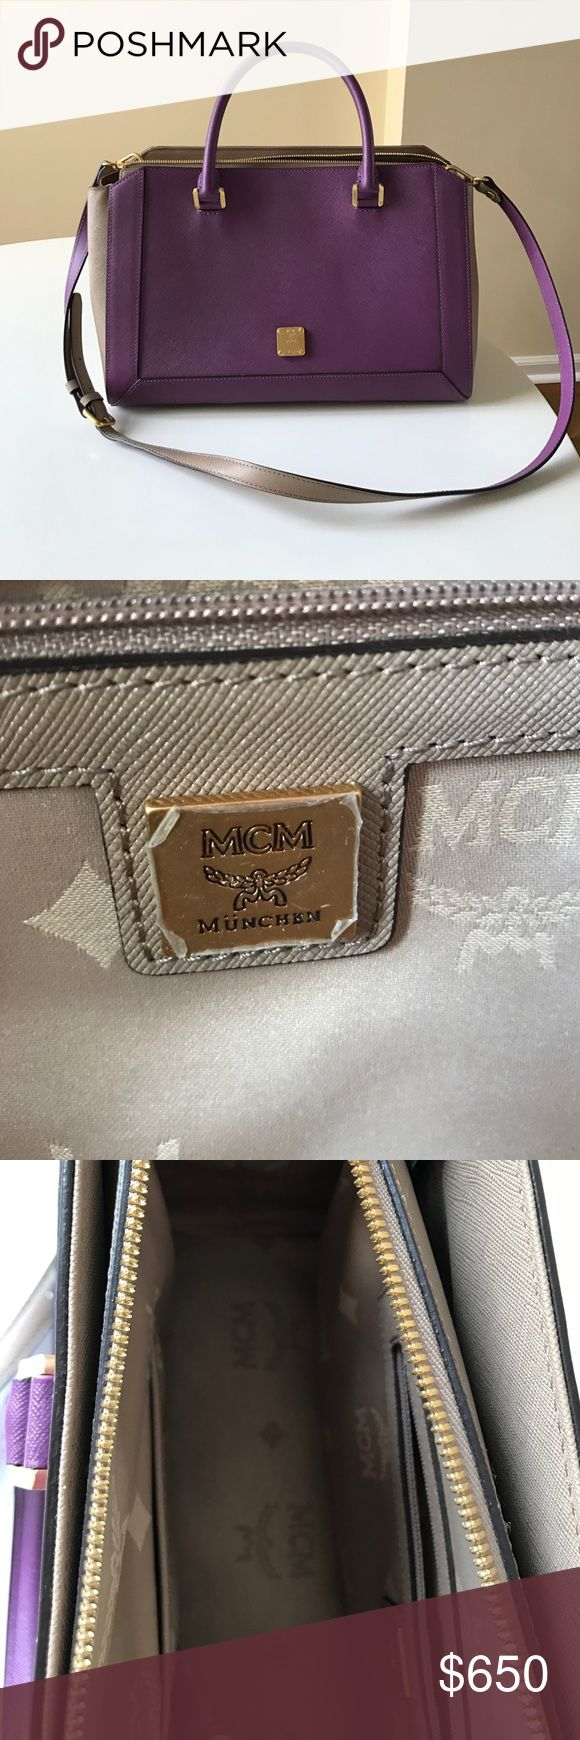 MCM purse Authentic MCM purse in lavender and taupe. Used once. In perfect condition MCM Bags